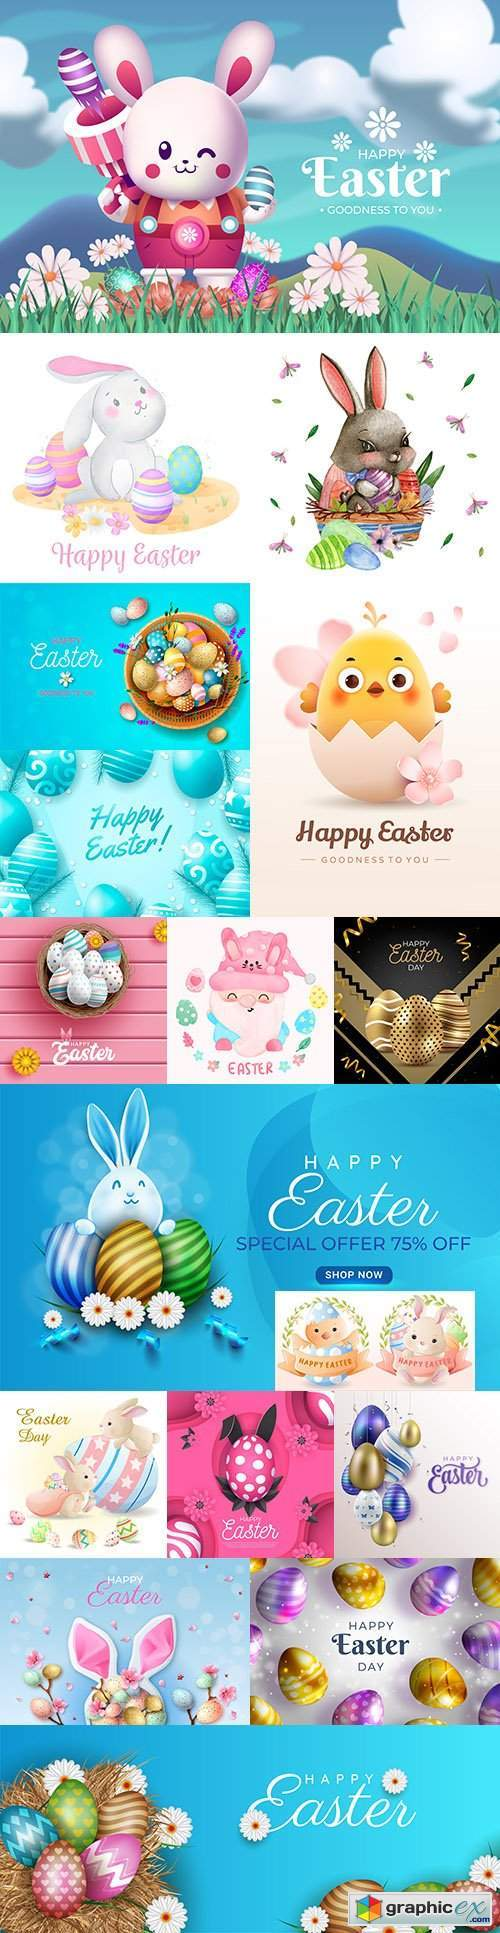 Happy Easter background and design banner with colorful eggs